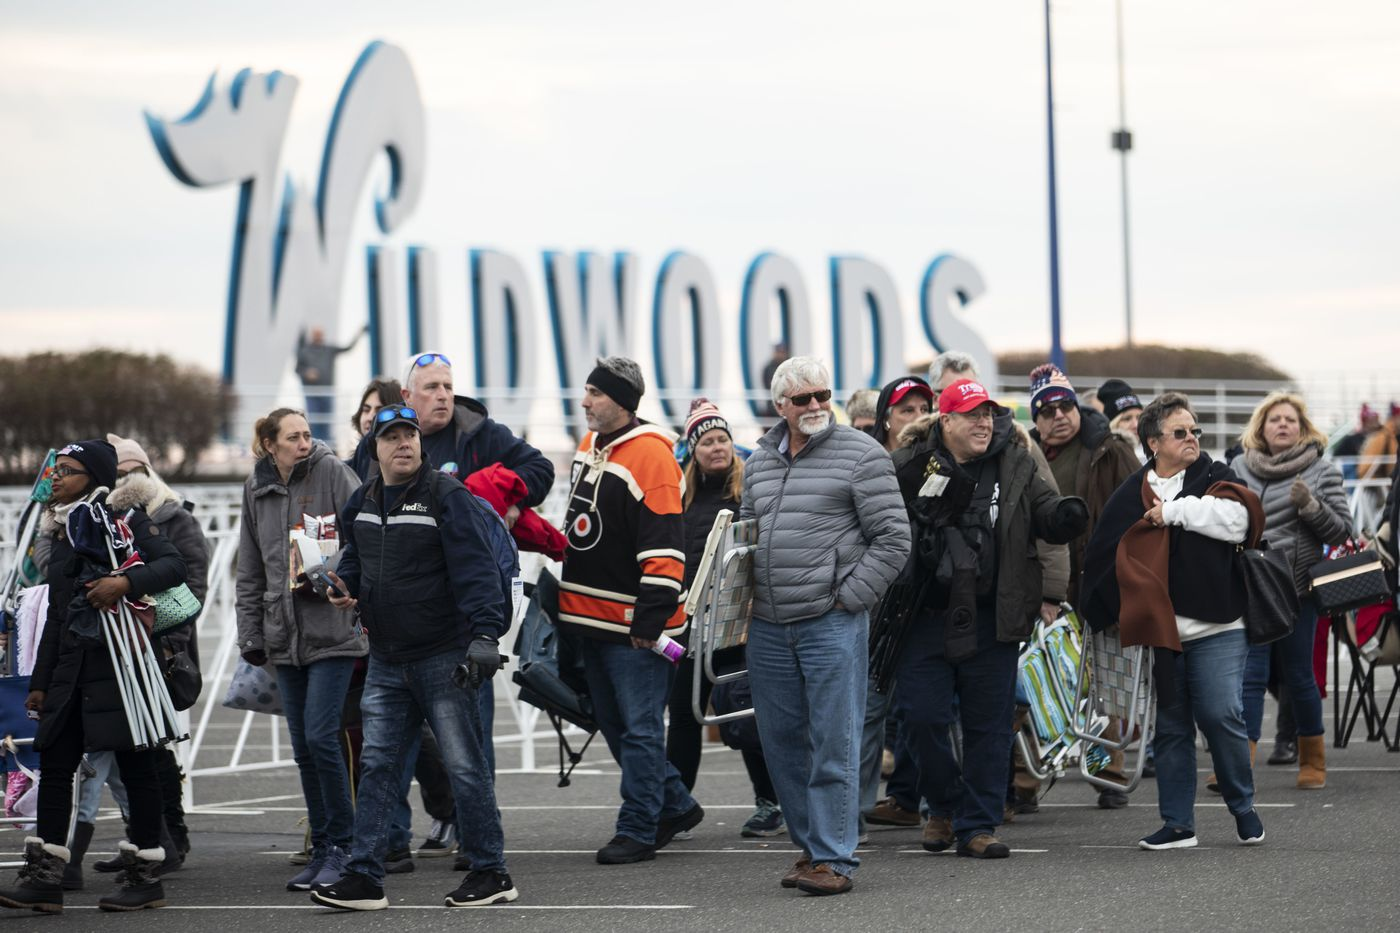 People file into lines outside of the Wildwoods Convention Center on Monday, a day before President Donald Trump's rally in the Shore town.